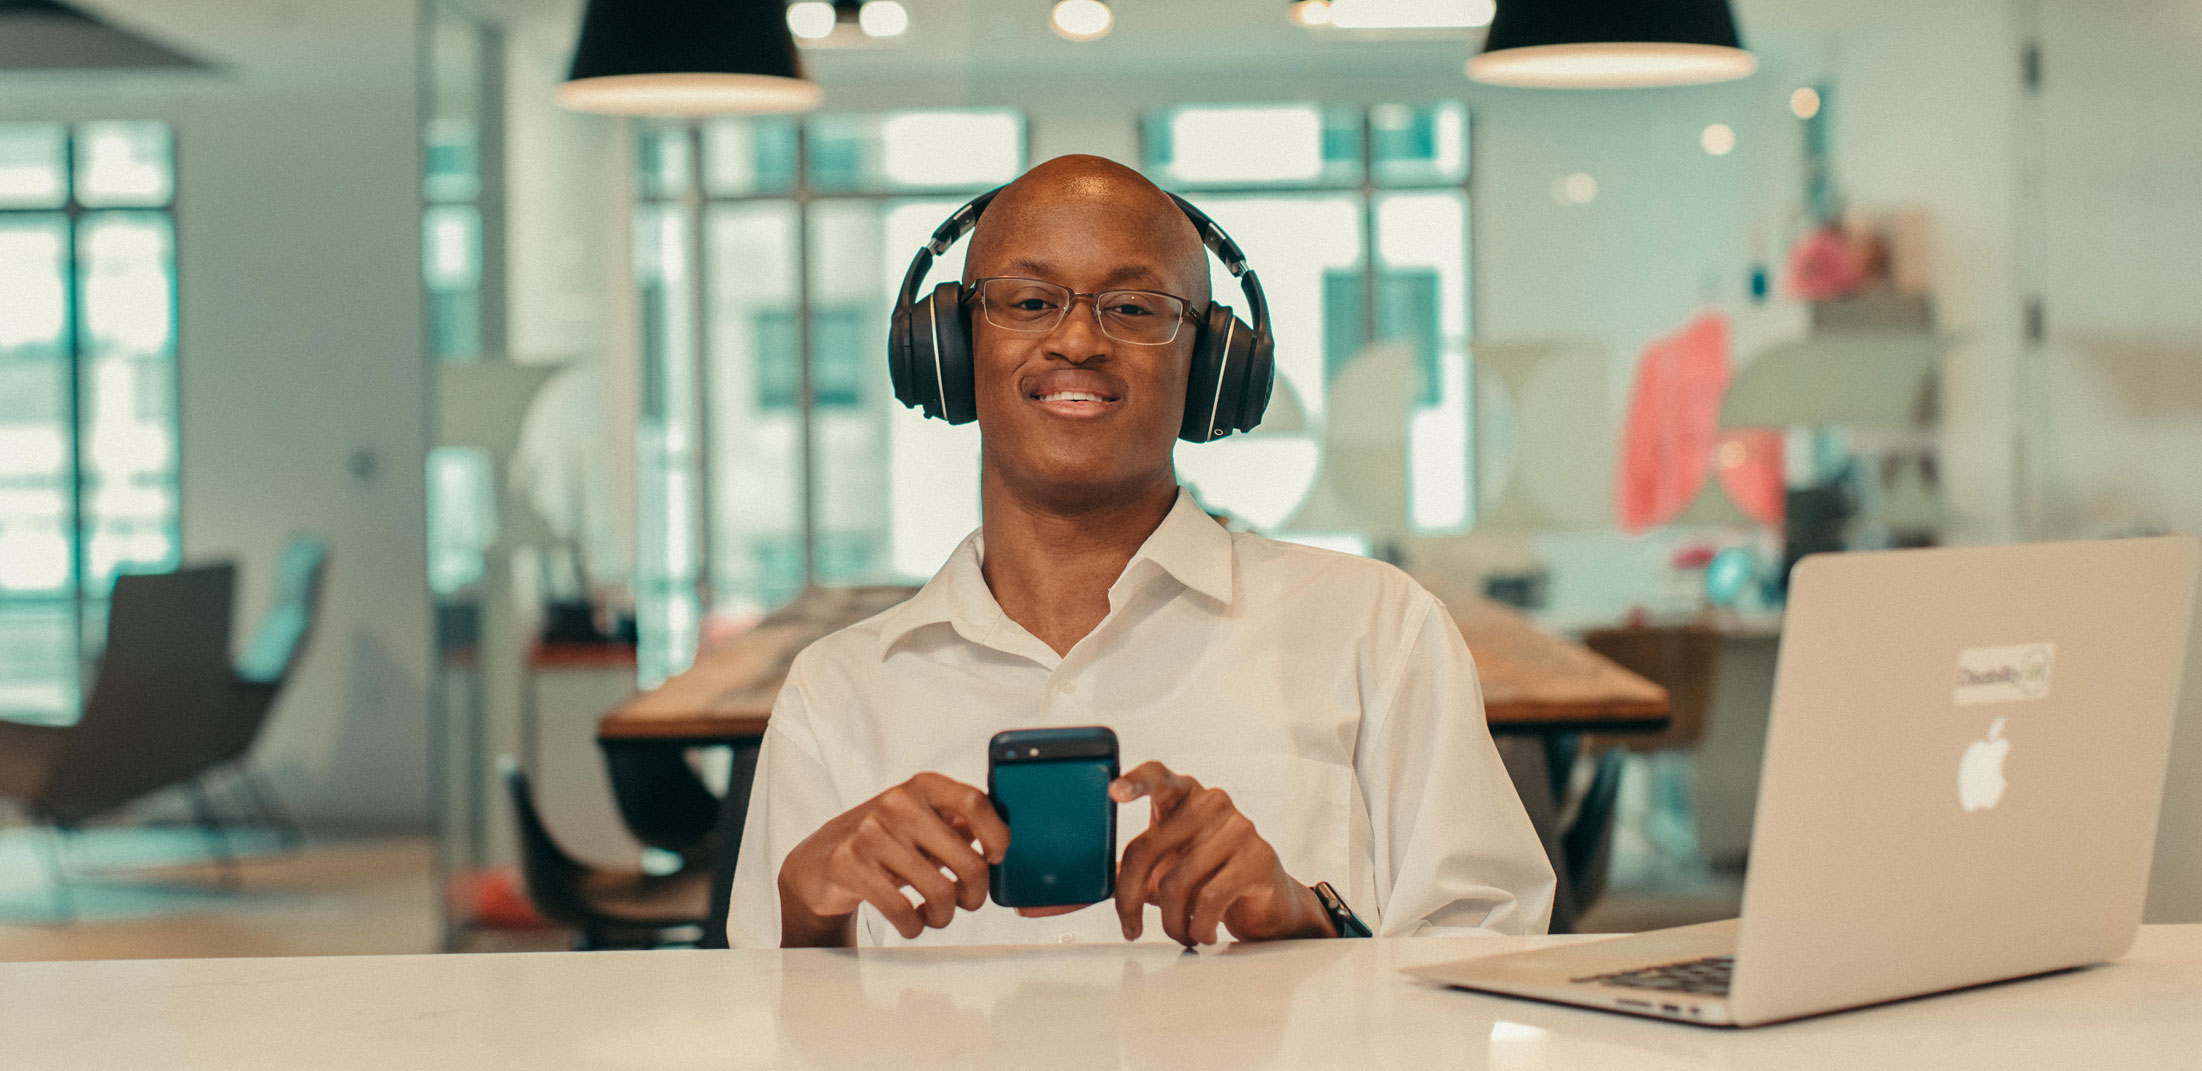 Man wearing headphones and holding a cell phone